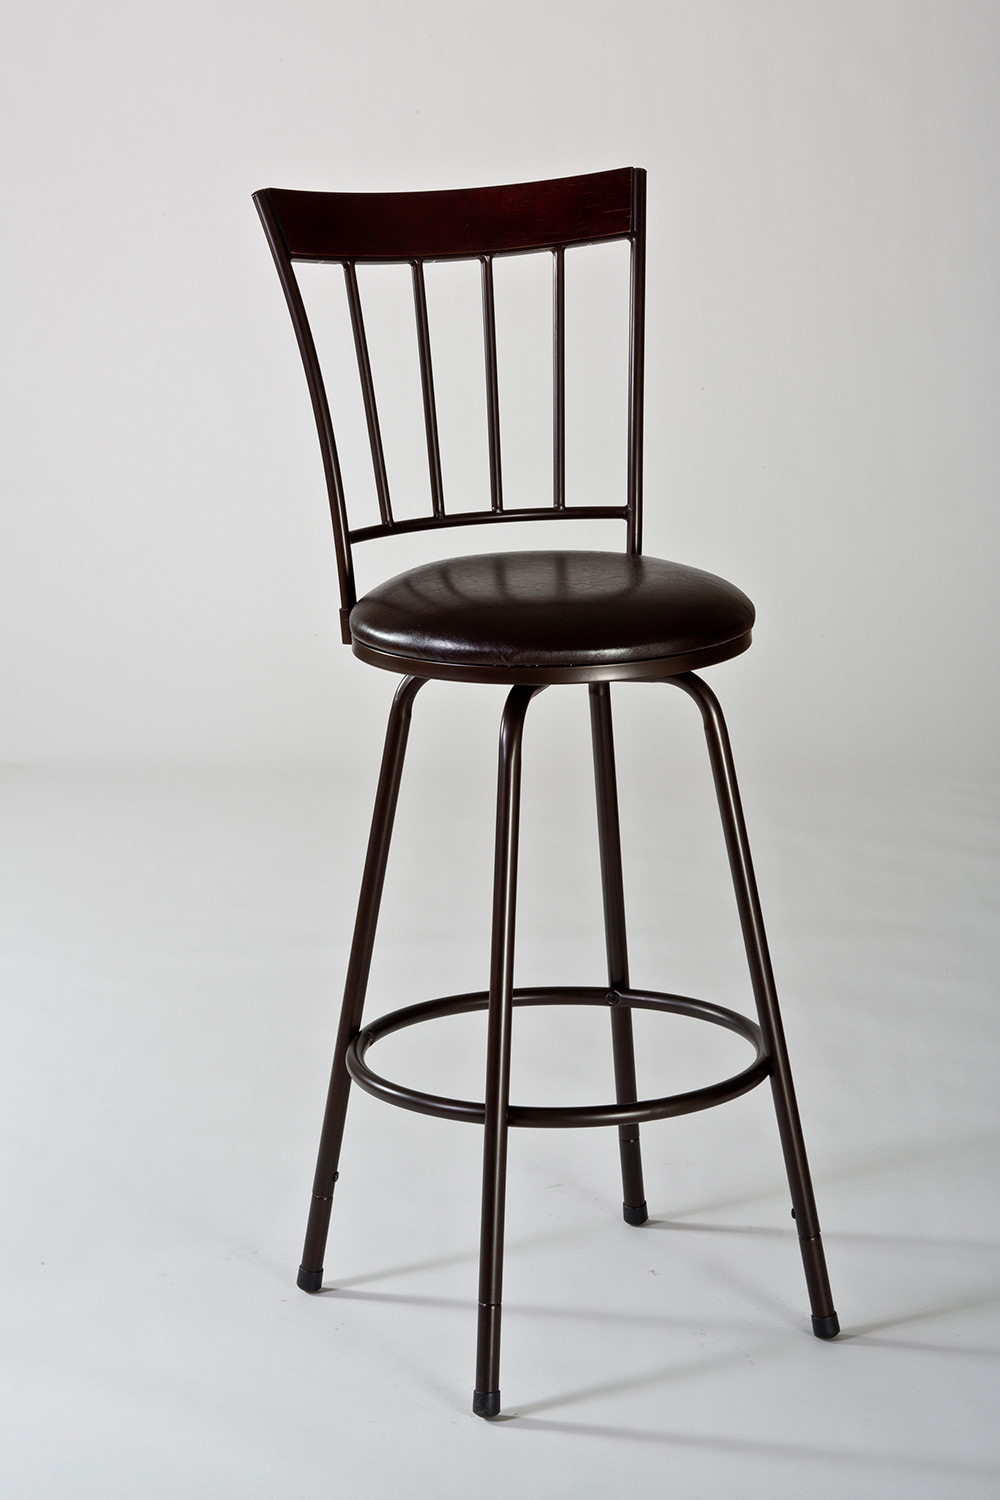 Hillsdale Cantwell Swivel Counter Bar Stool with Nested Leg - Brown/Brown PU